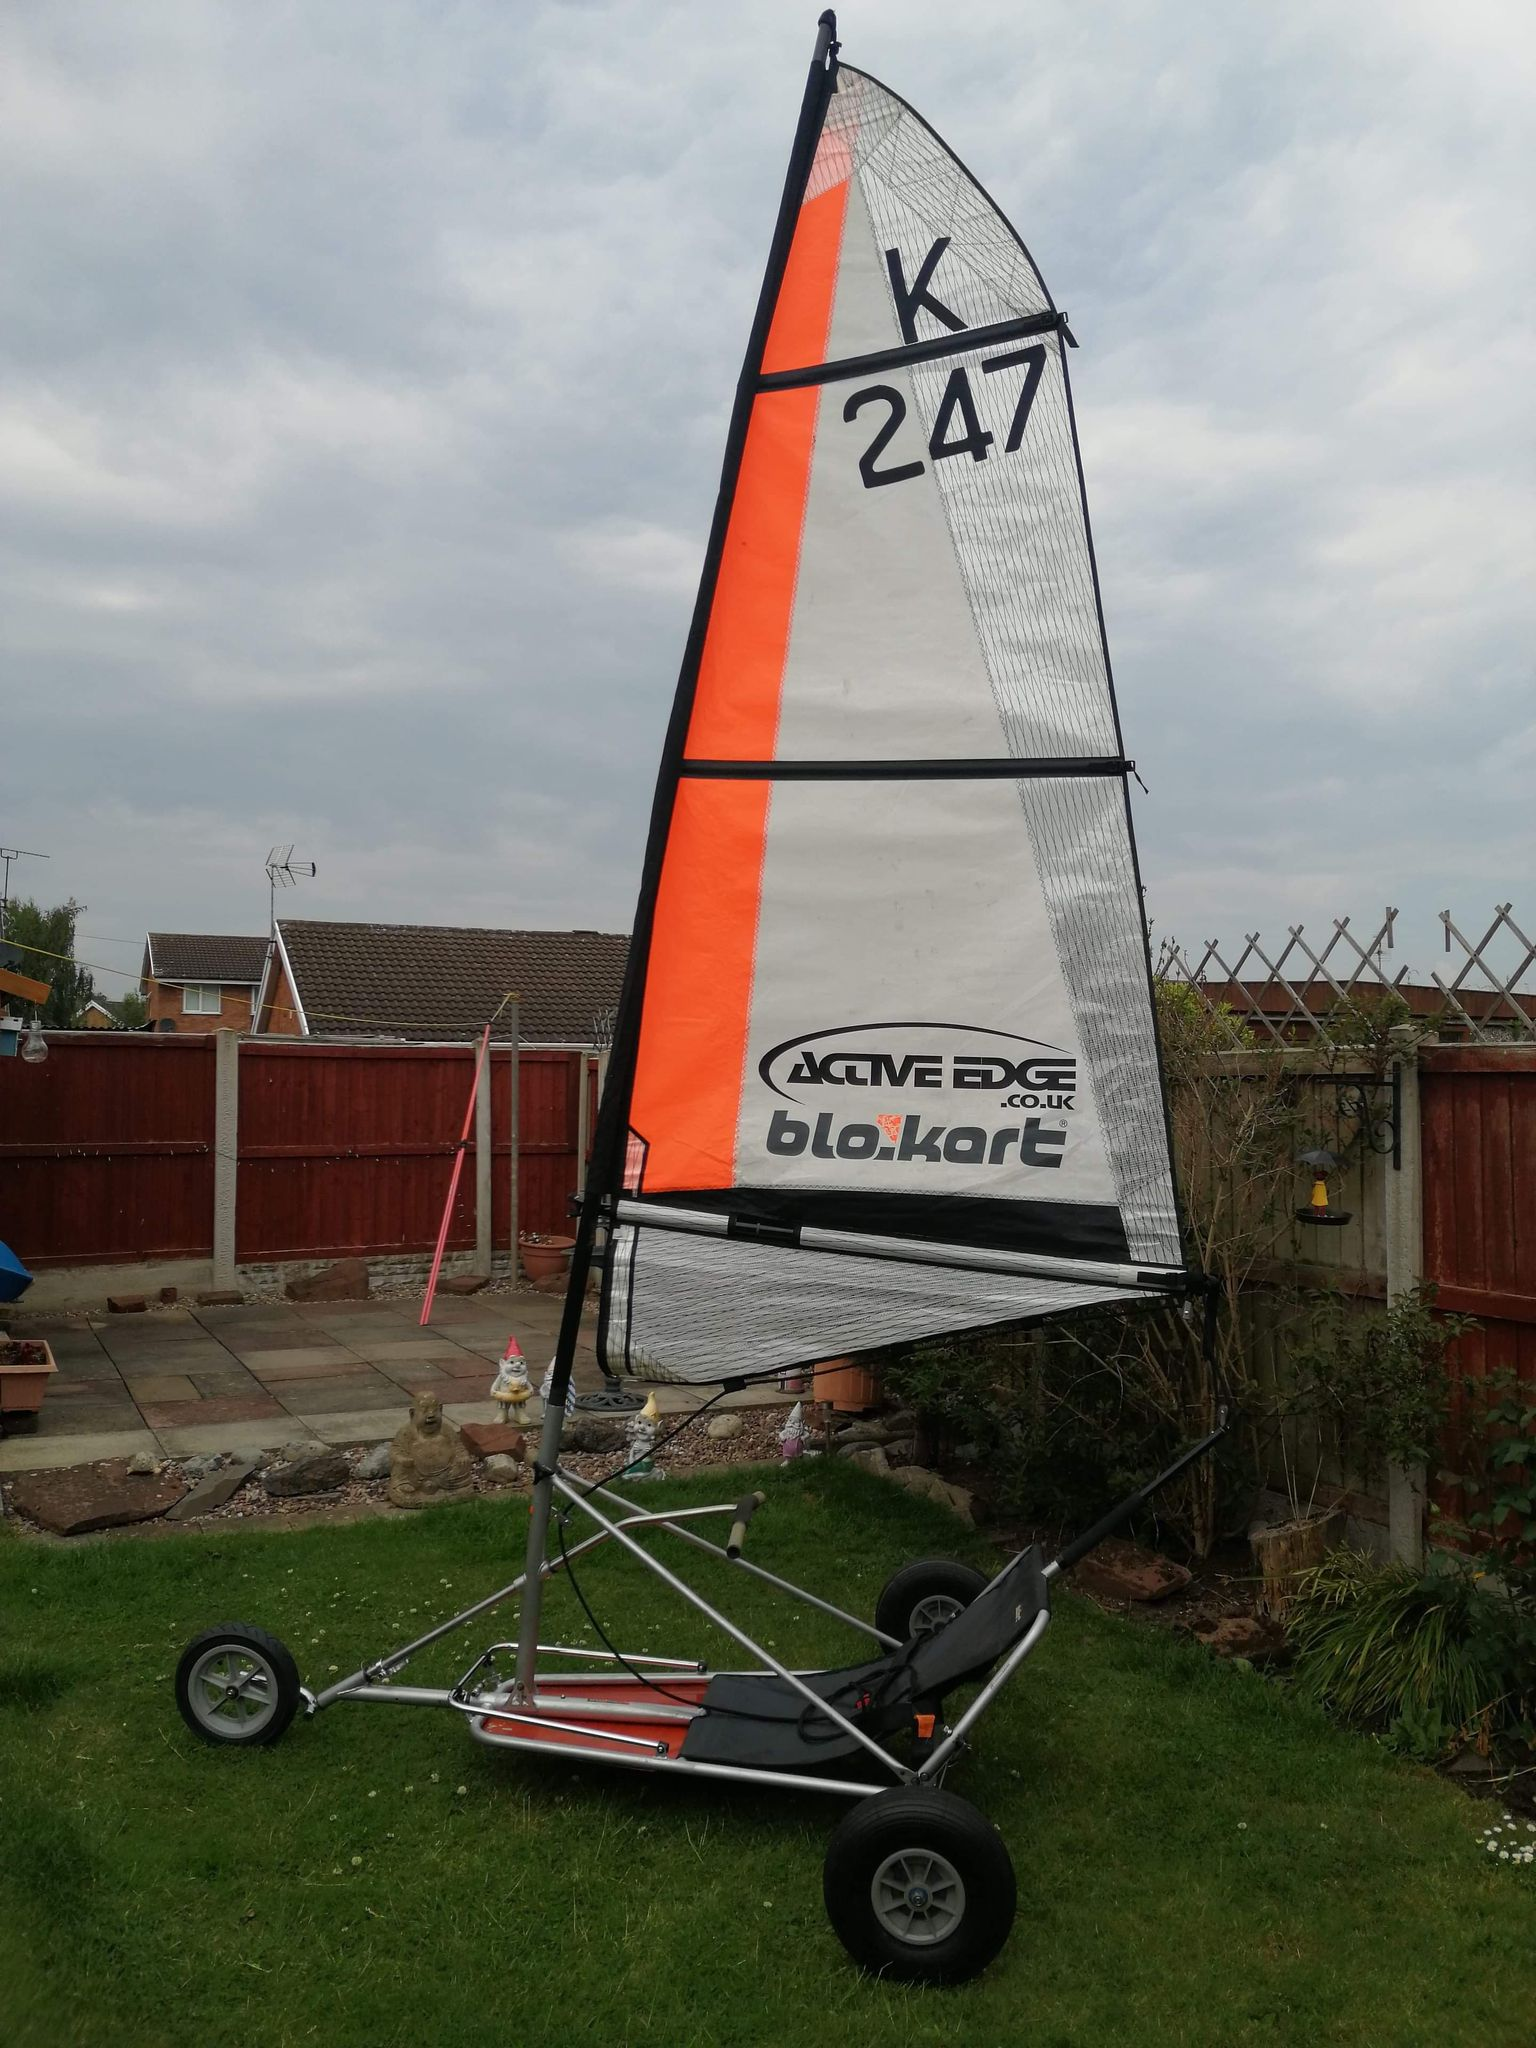 Sport kart in very good condition with a 3m sail